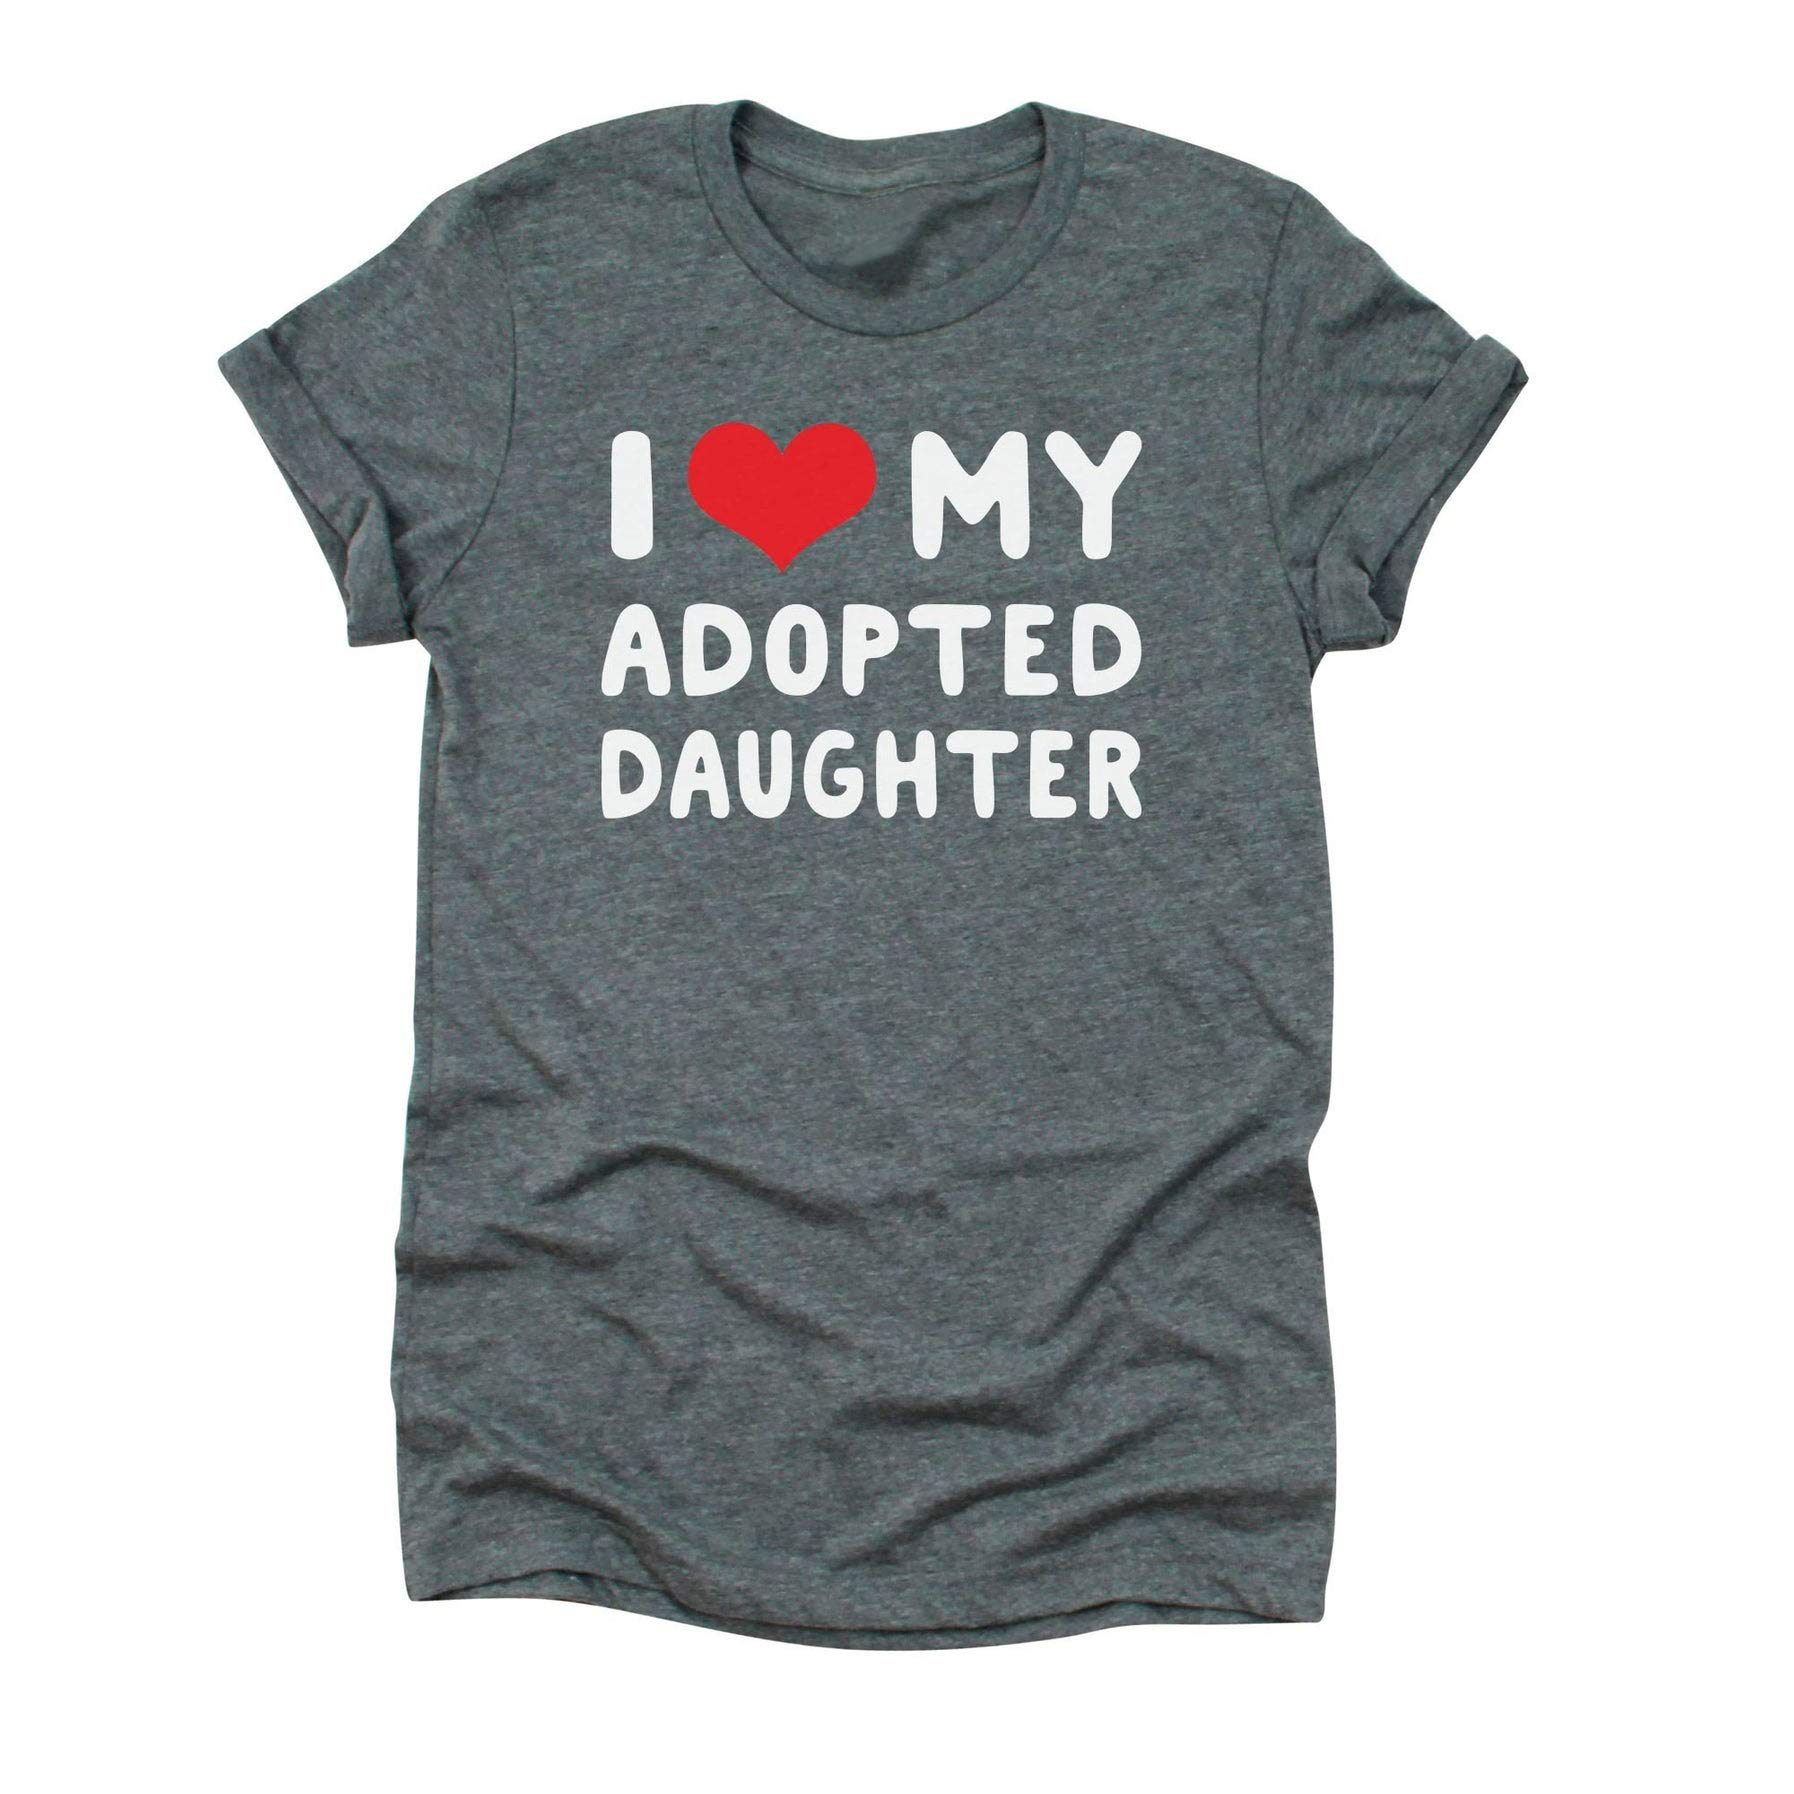 I Love My Adopted Daughter T Shirt For Letter Print Short Sleeve Tee Top